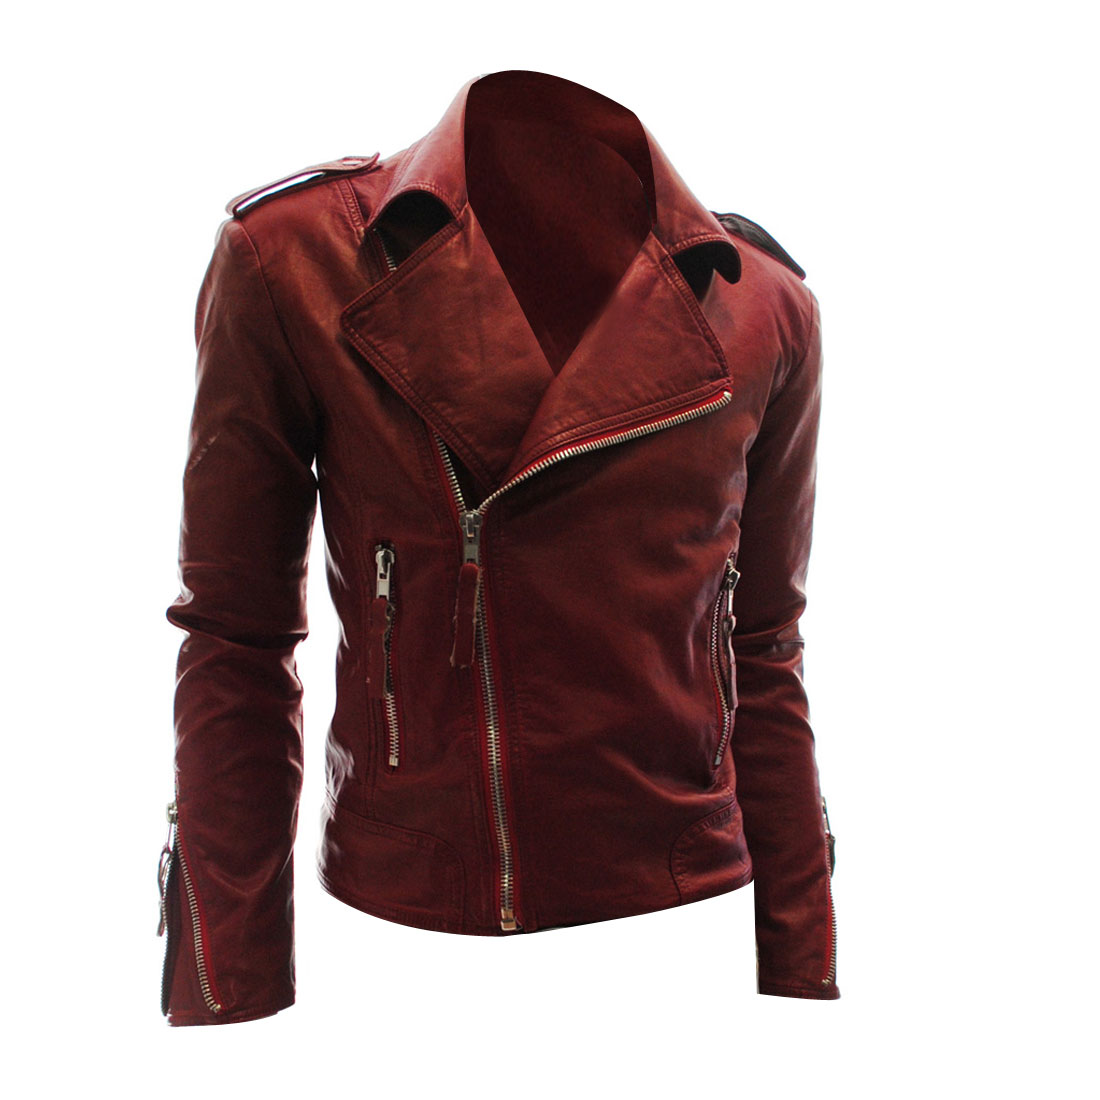 Men Burgundy M Asymmetrical Zipper Front Motorcycle Stylish Jacket Outwear